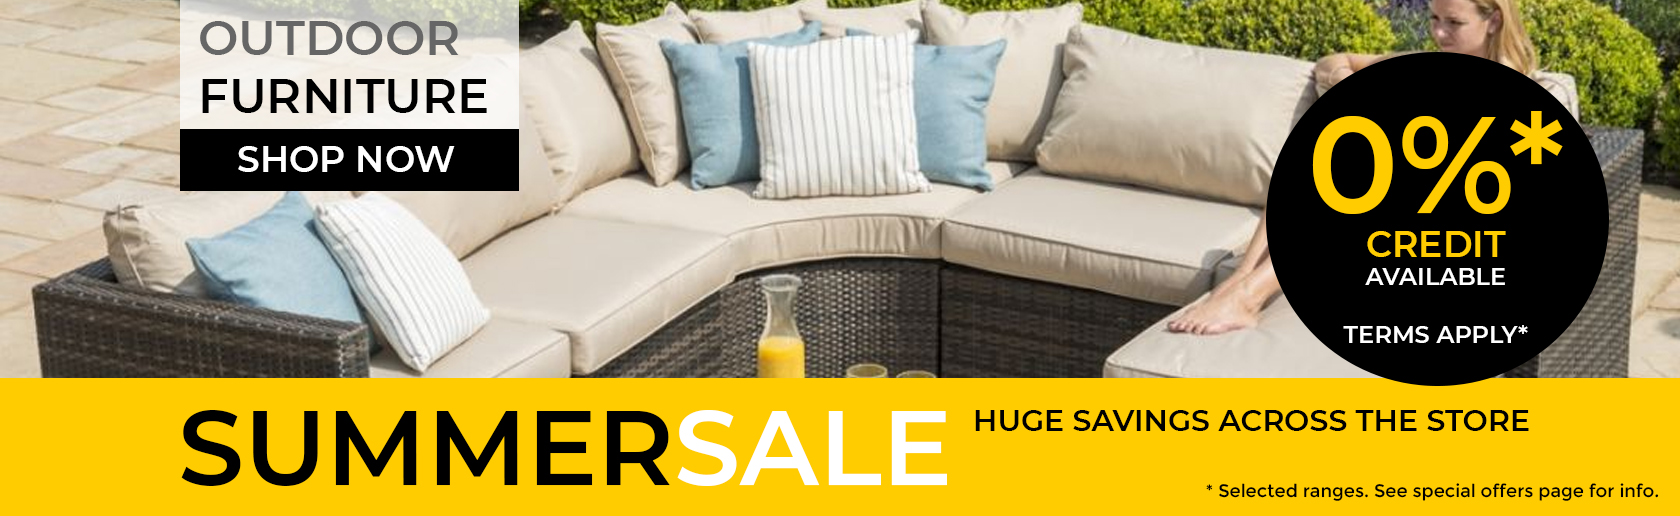 Garden Furniture Summer Sale